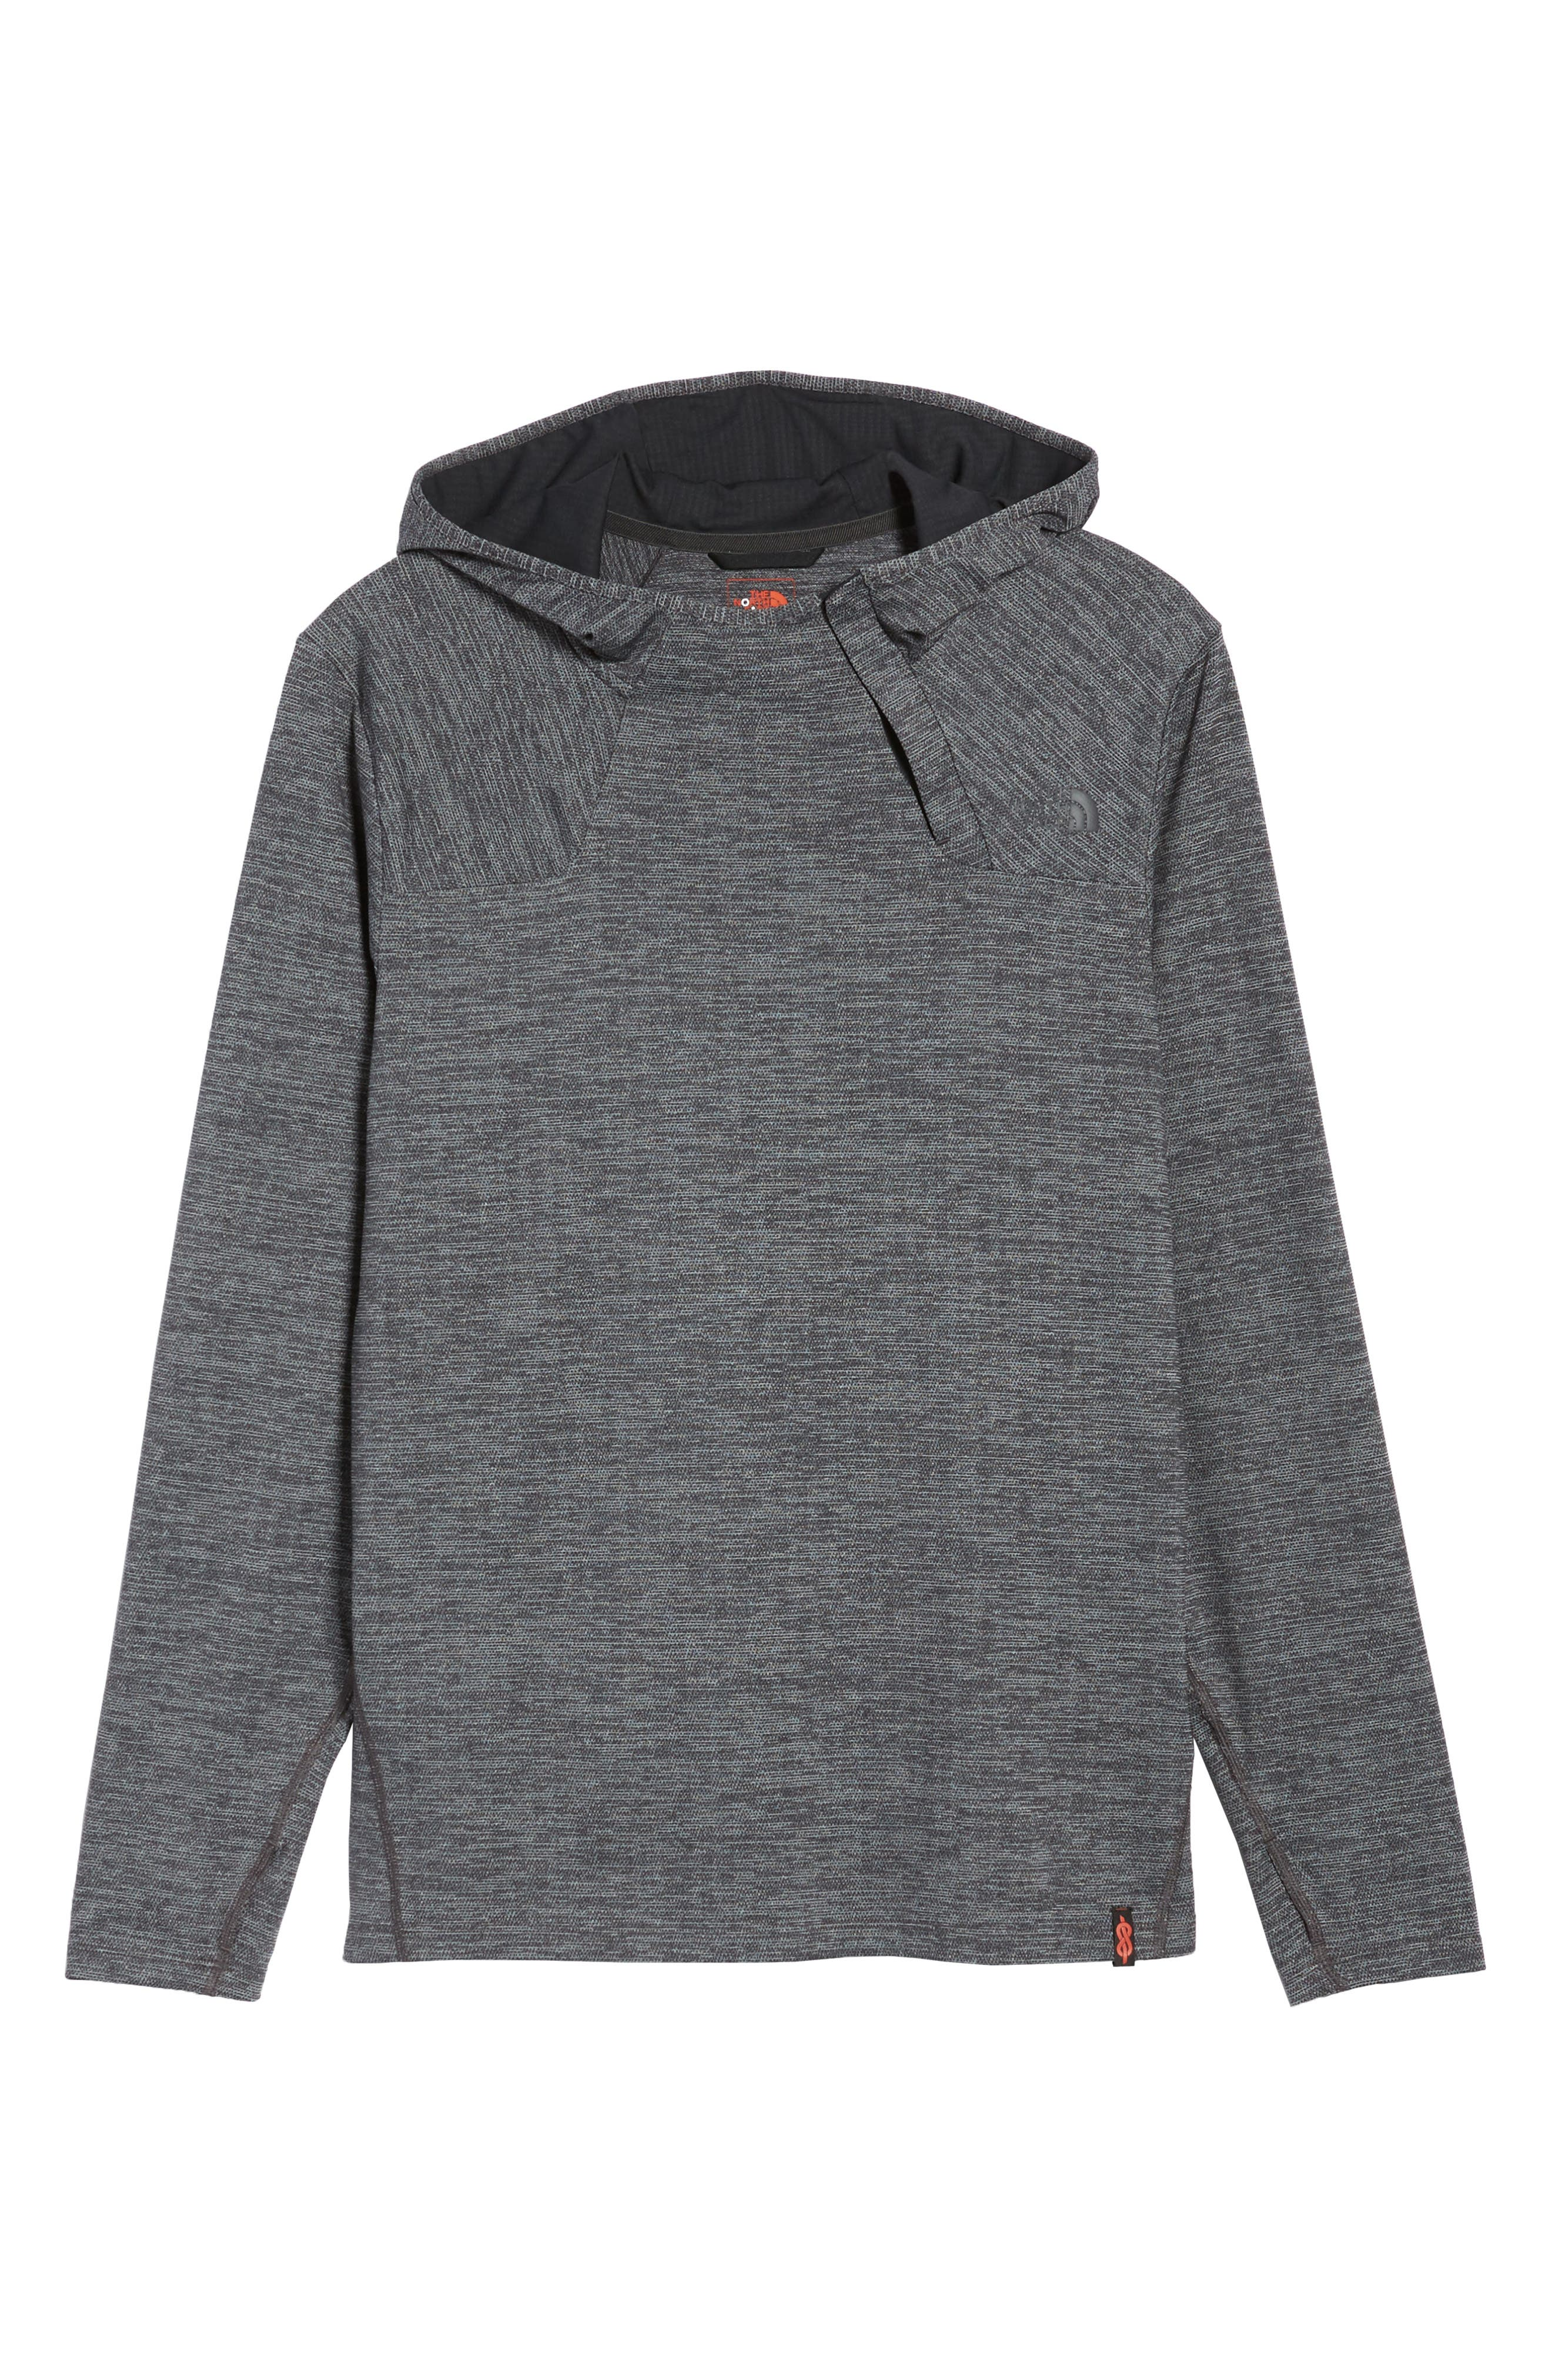 THE NORTH FACE,                             Beyond The Wall Hoodie,                             Alternate thumbnail 6, color,                             001